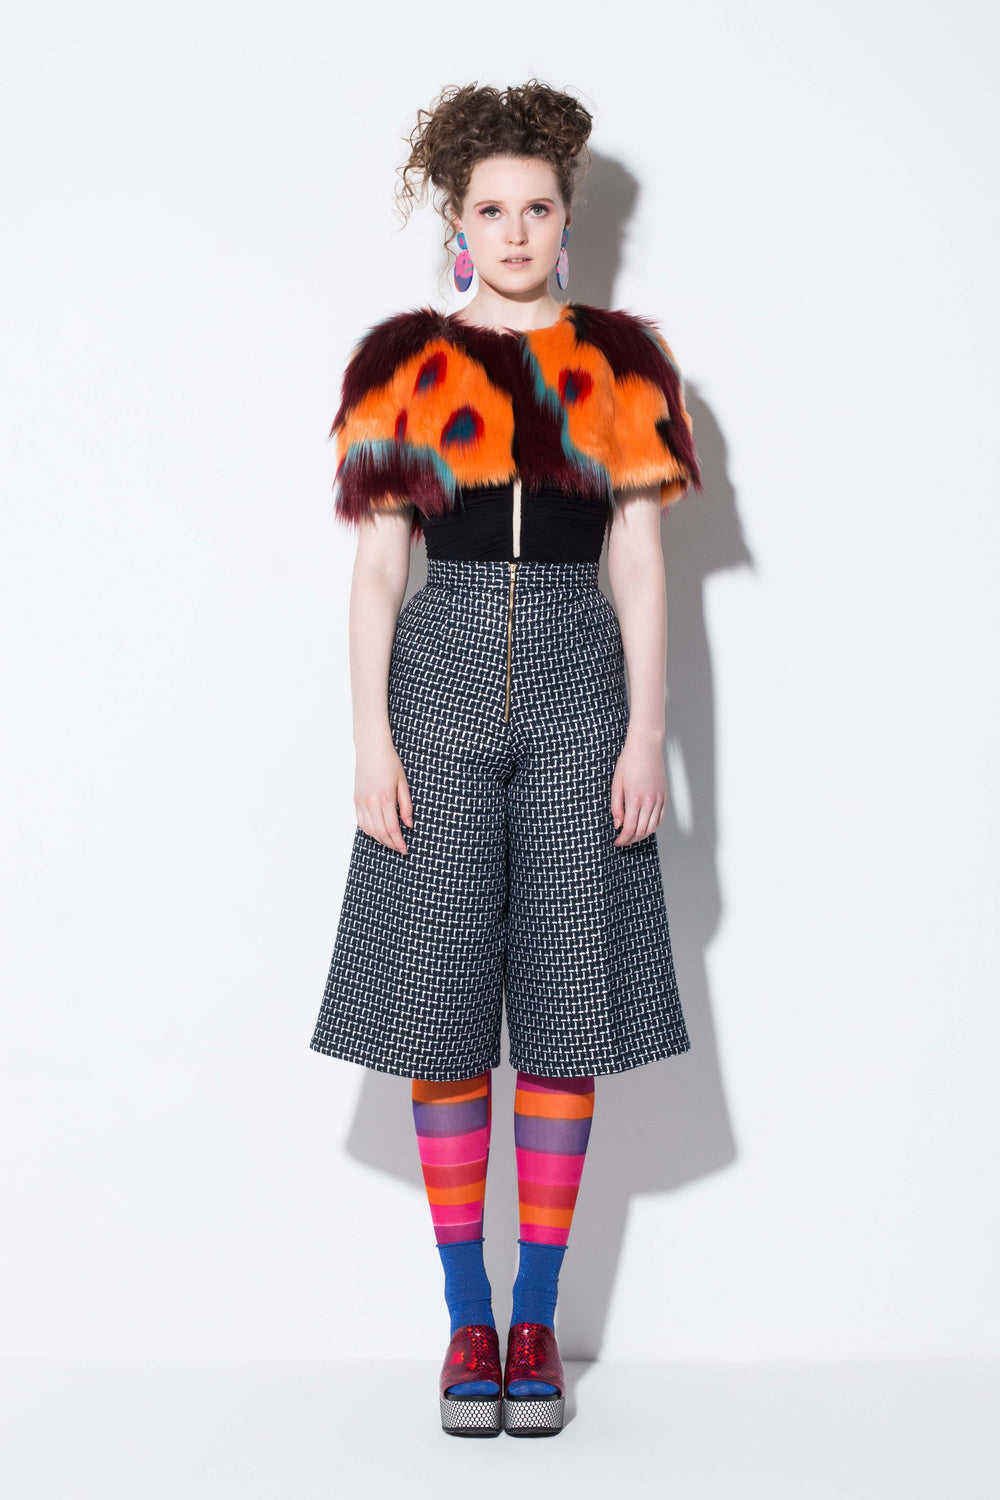 3 seasons| a practical orange desert patterned faux fur capelete accessory from jin & yin front view